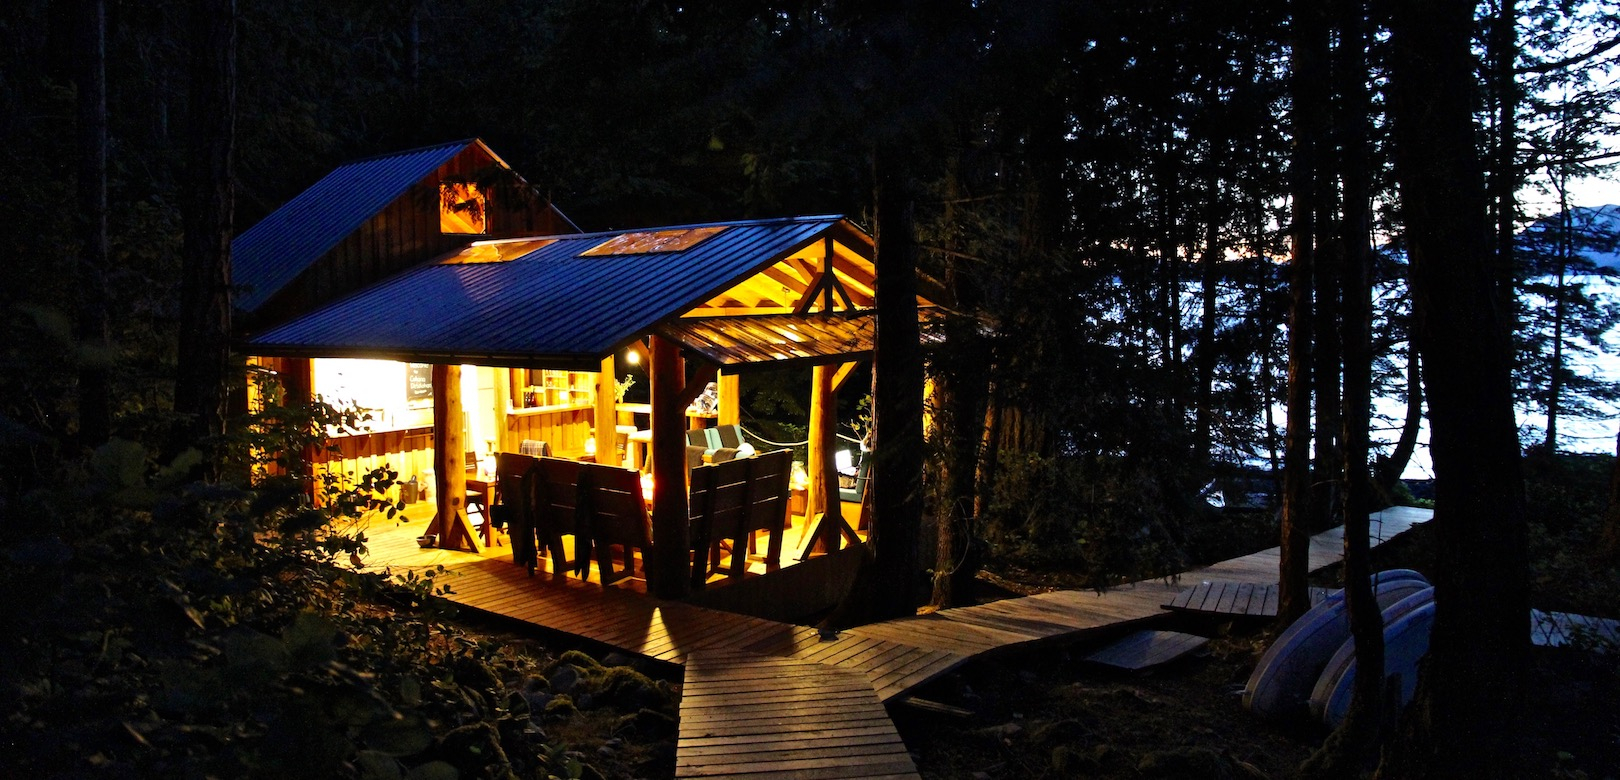 The Cabana Cafe glowing from it's LED lights on Kinghorn Island in Desolation Sound